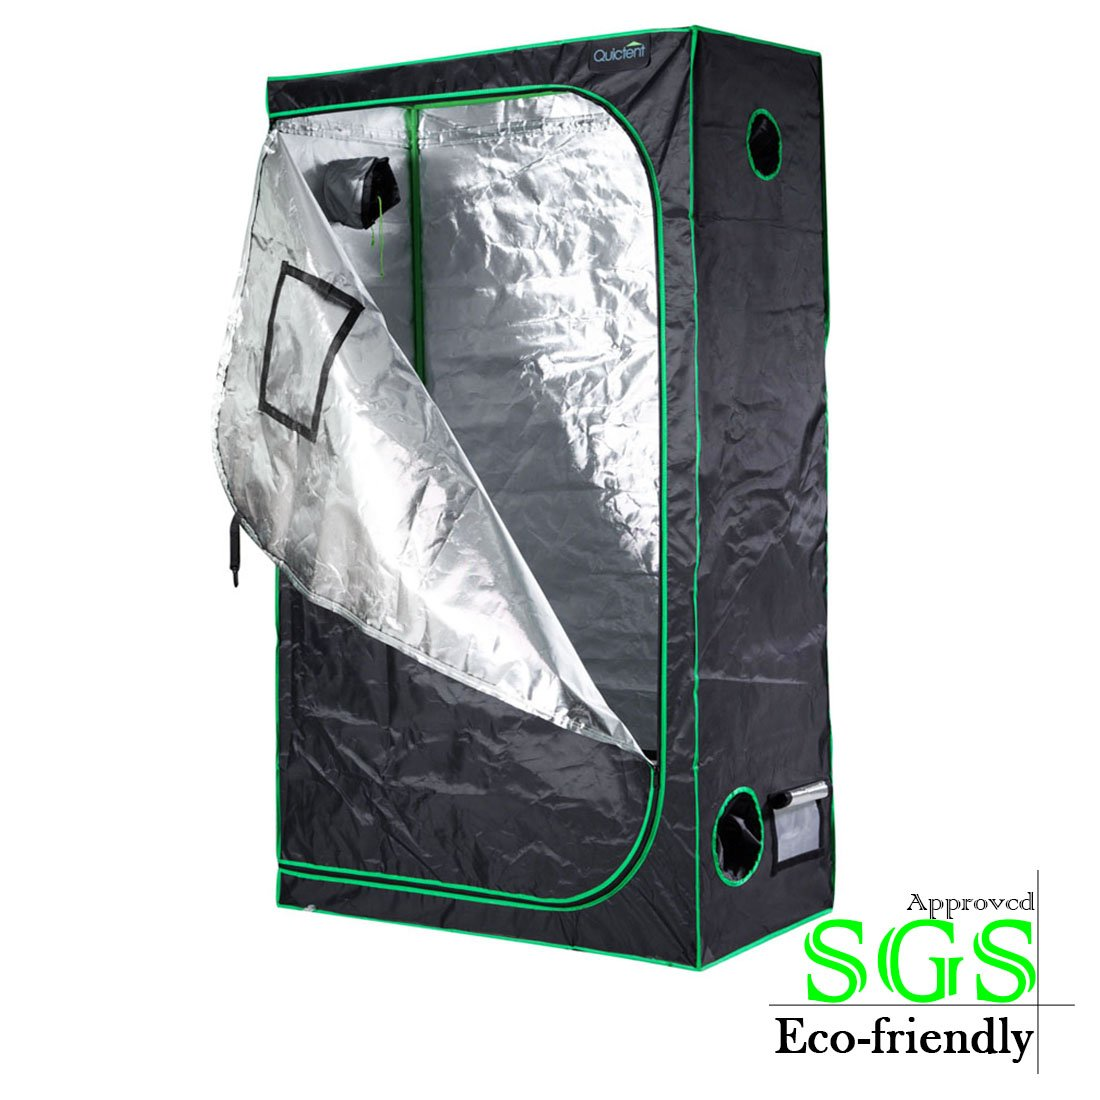 """Quictent SGS Approved Eco-friendly 48""""x24""""x84"""" Reflective Mylar Hydroponic Grow Tent with Heavy Duty Anti-burst Zipper and waterproof Floor Tray for Indoor Plant Growing 4'x2'"""